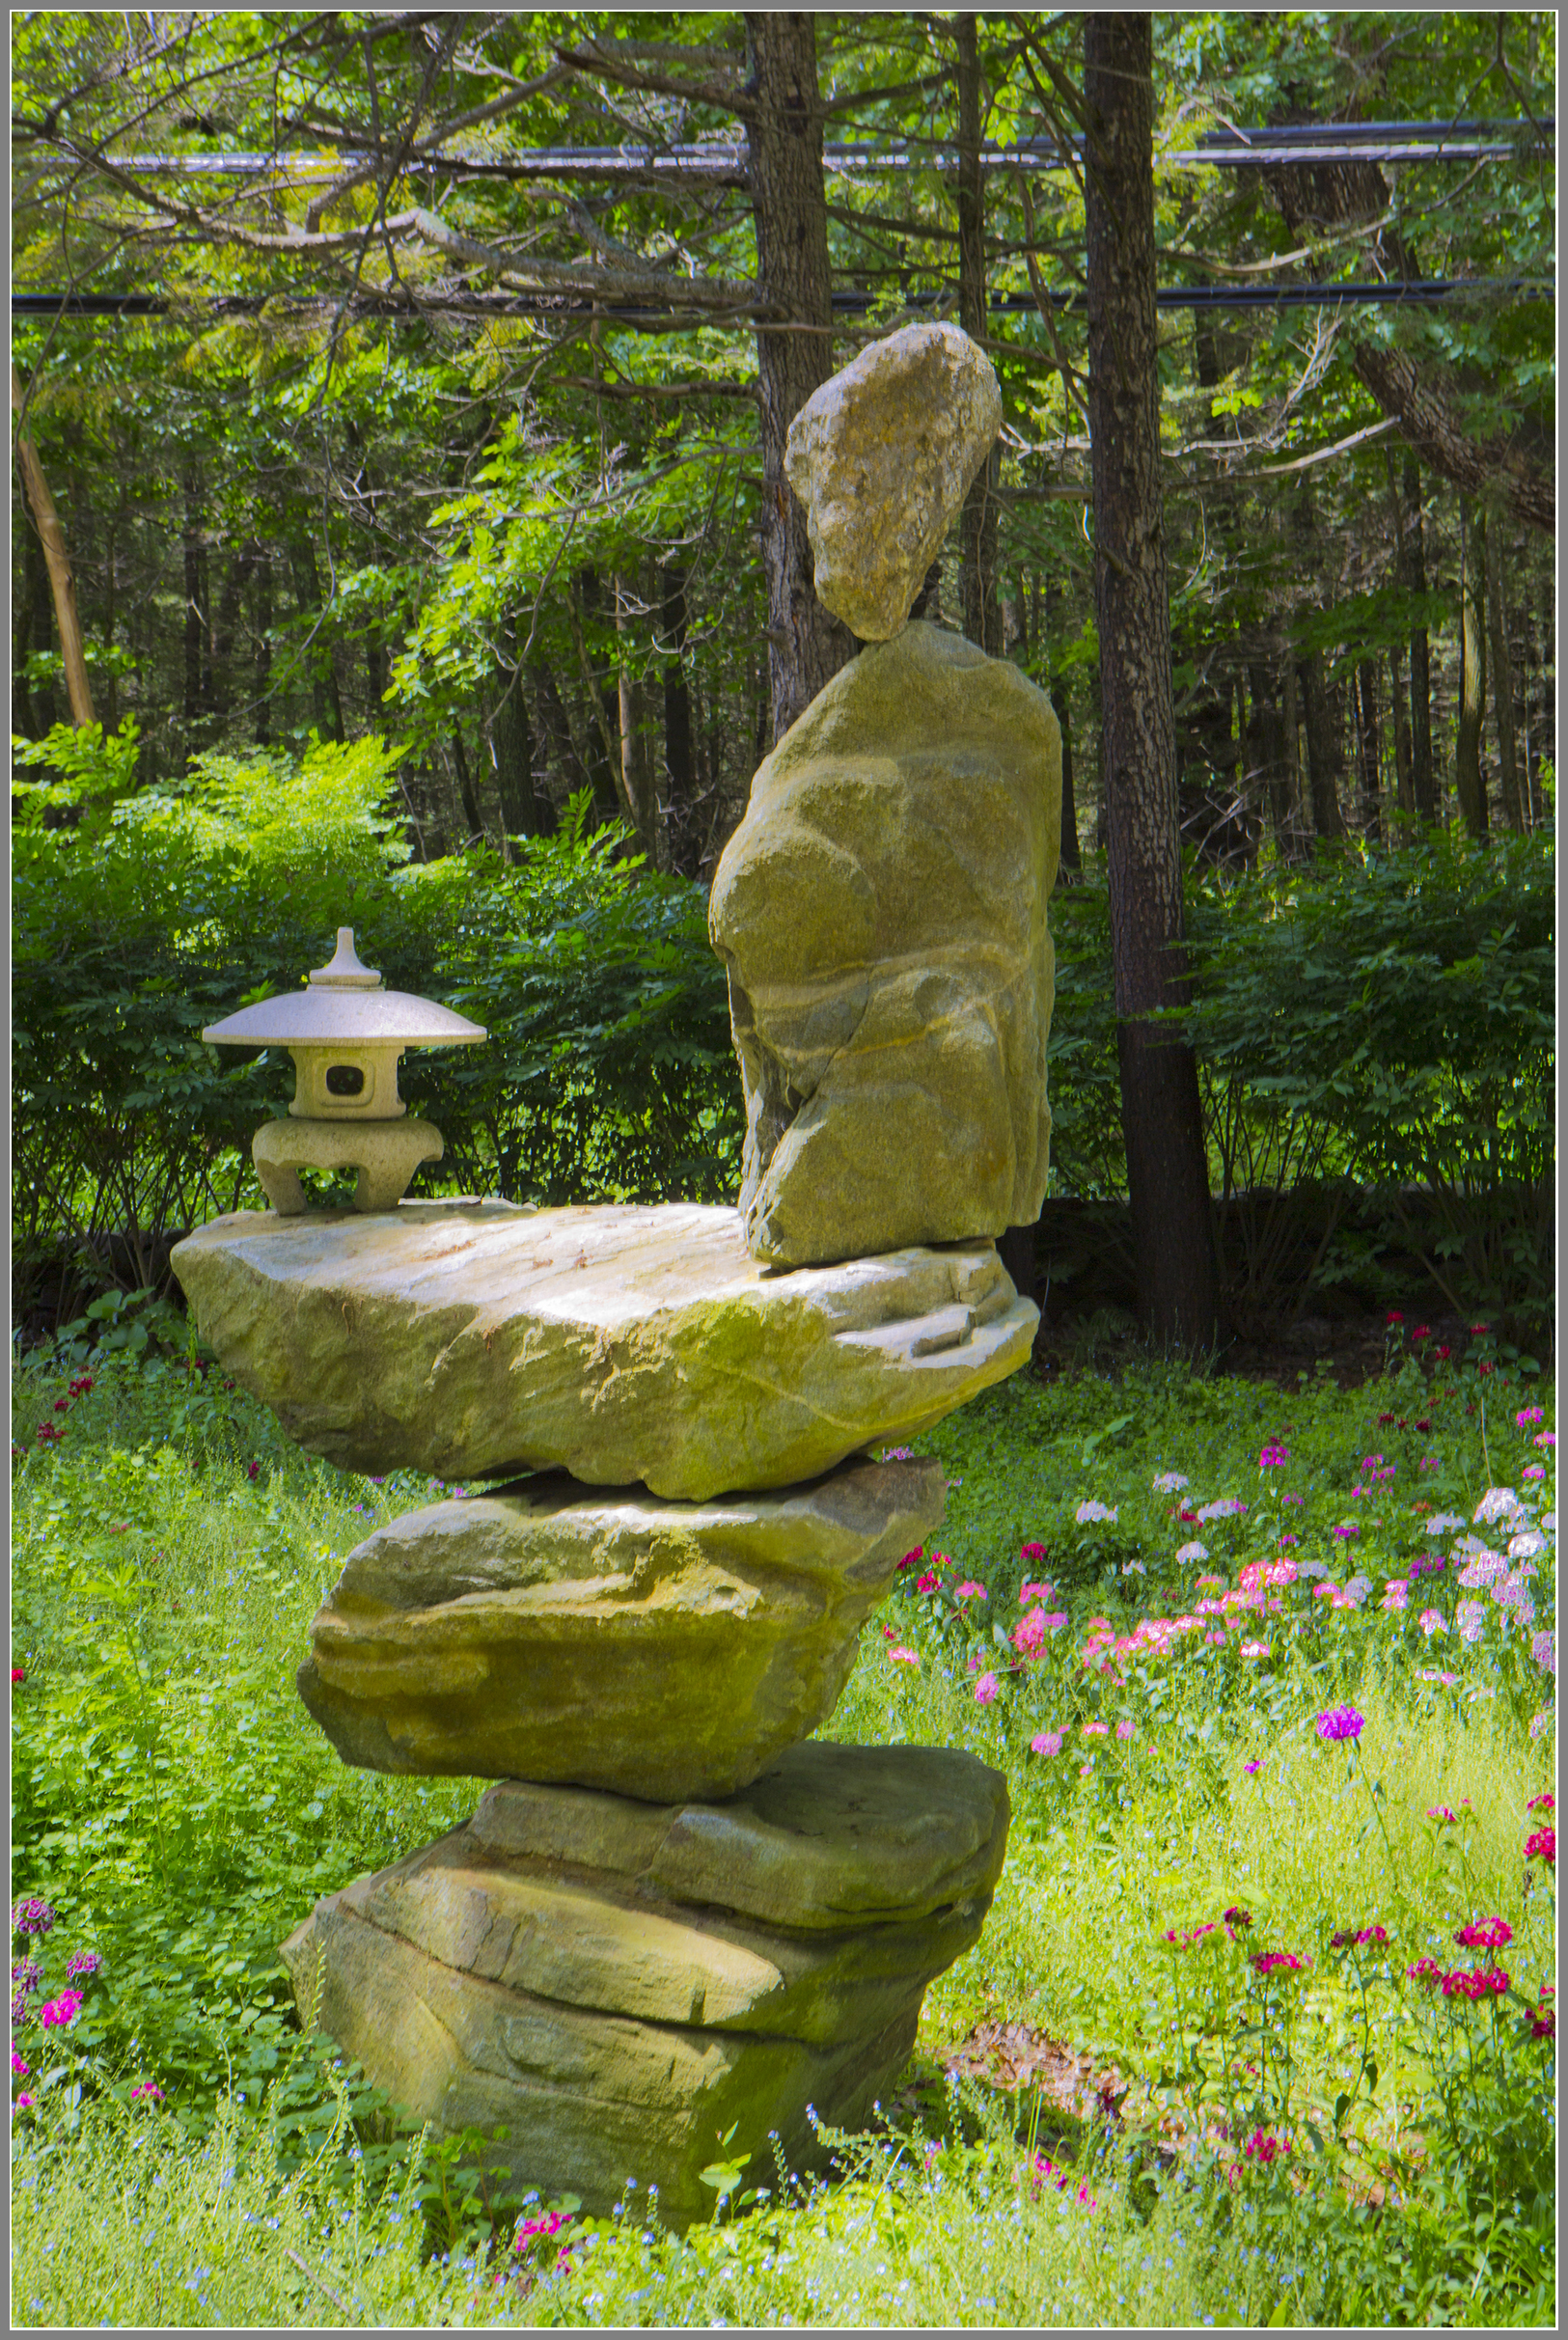 Cairn variation of stone art by Artistic Outdoors